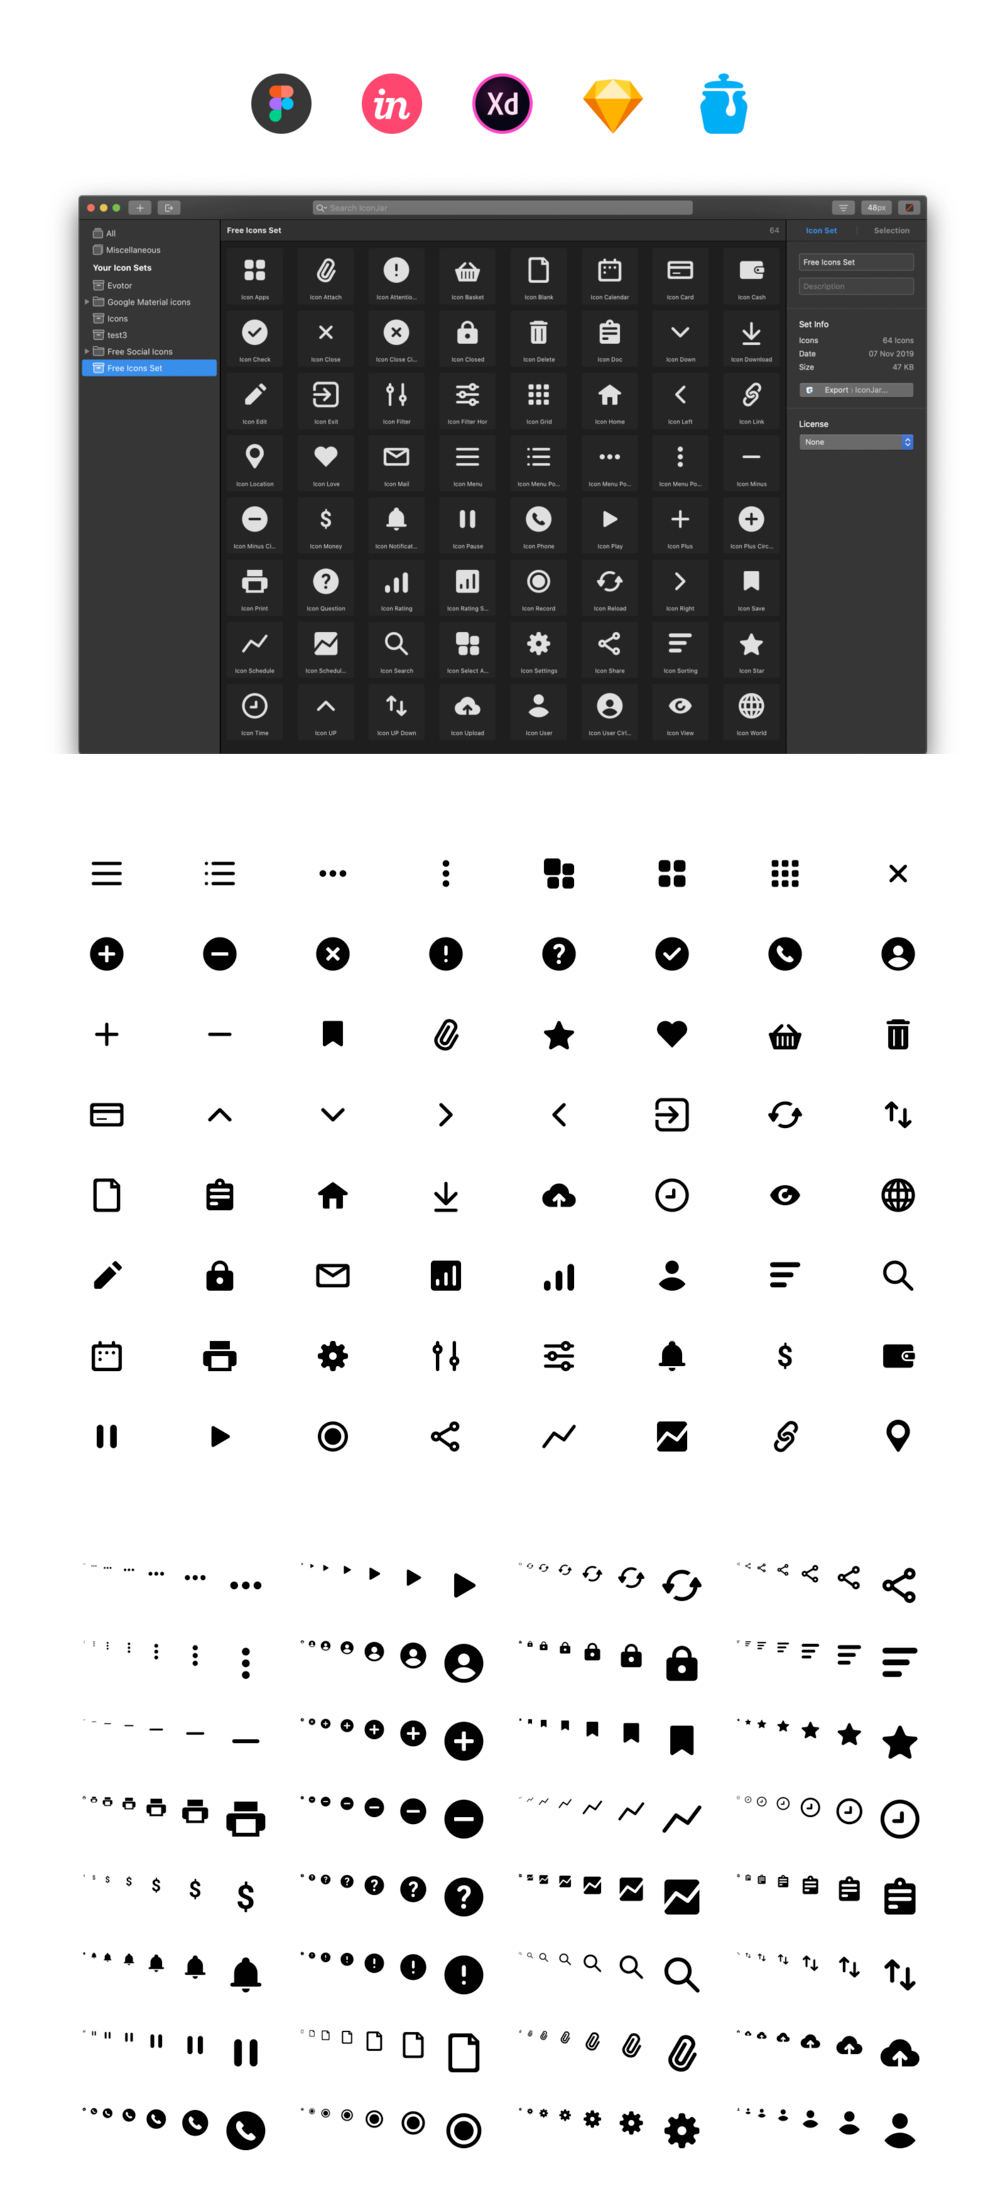 64 Free Essential Icons - A set of 64 most popular pictograms for a designer.